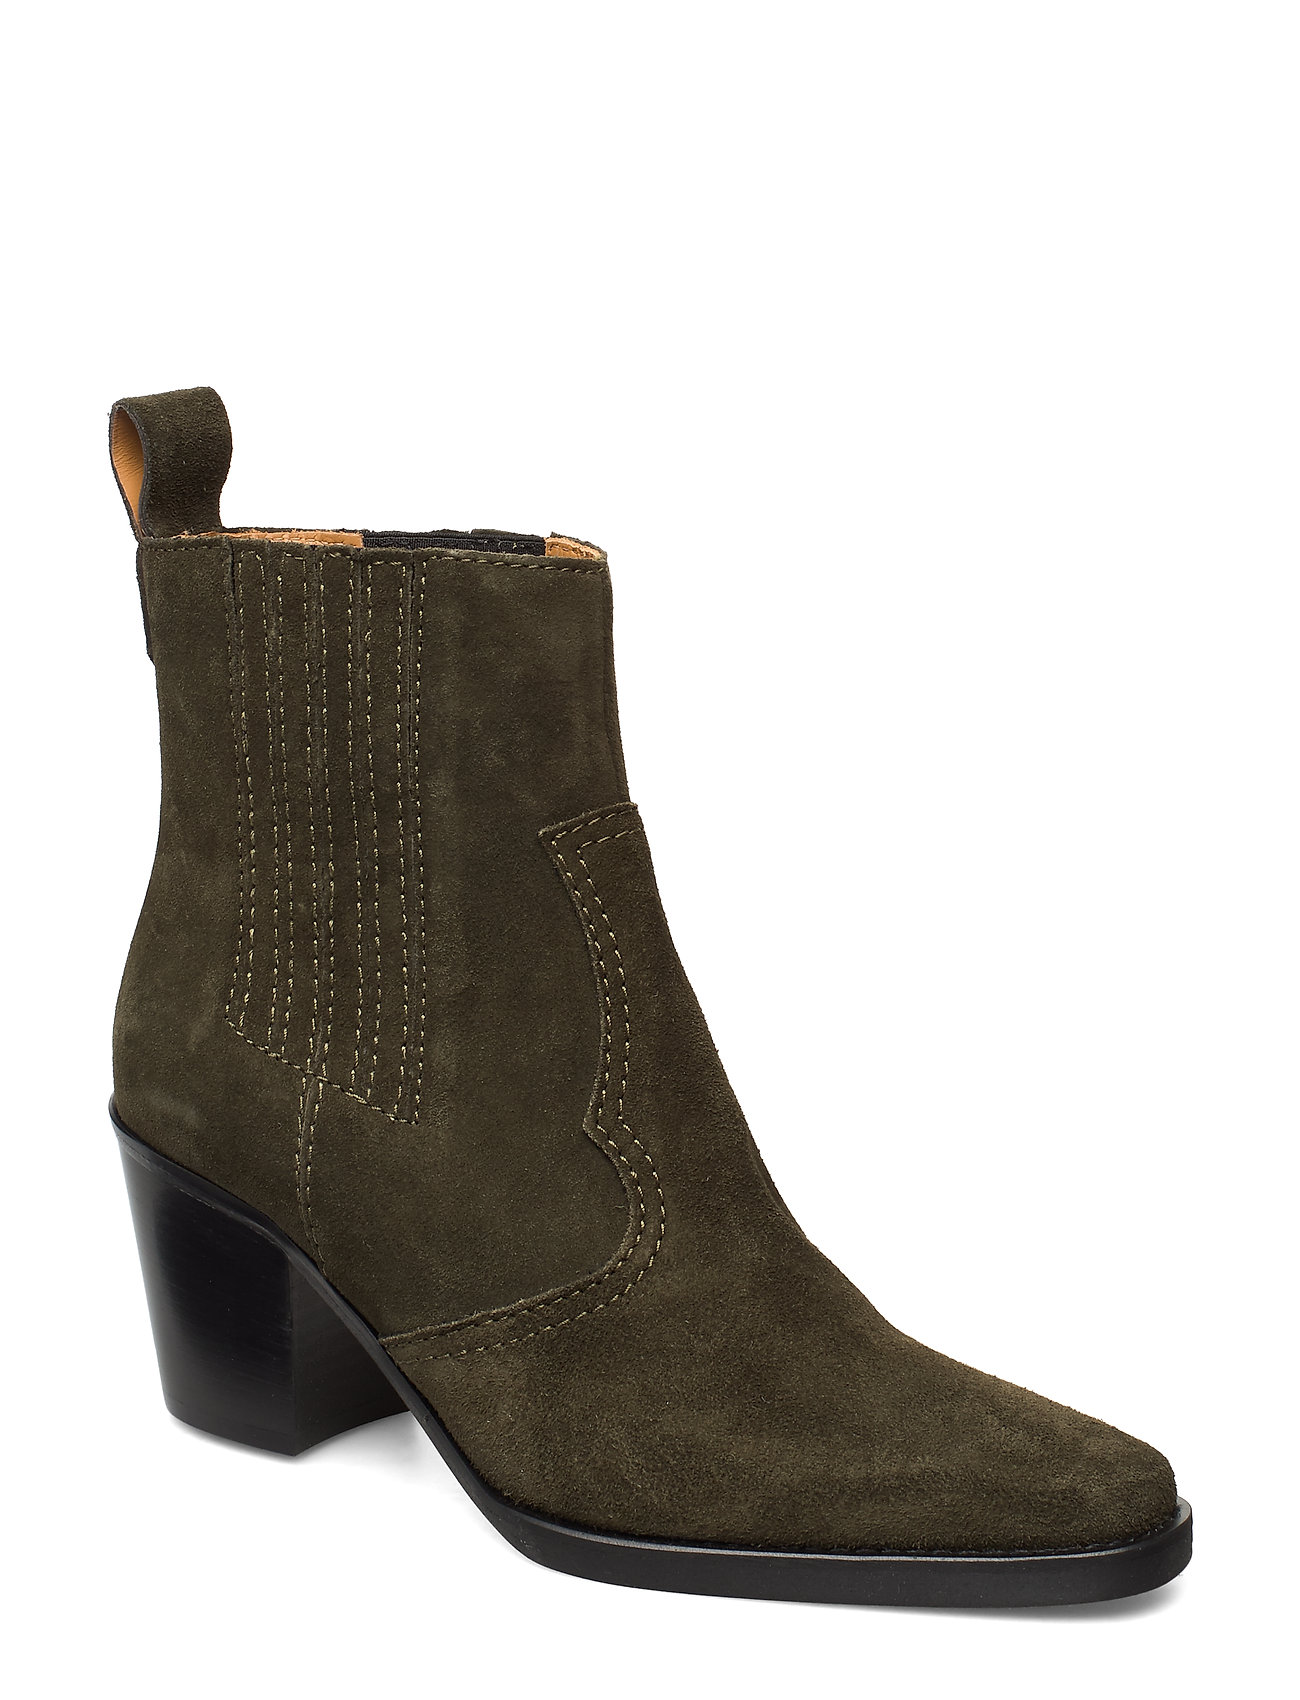 Image of Western Ankle Boots Shoes Boots Ankle Boots Ankle Boot - Heel Grøn Ganni (3288857677)